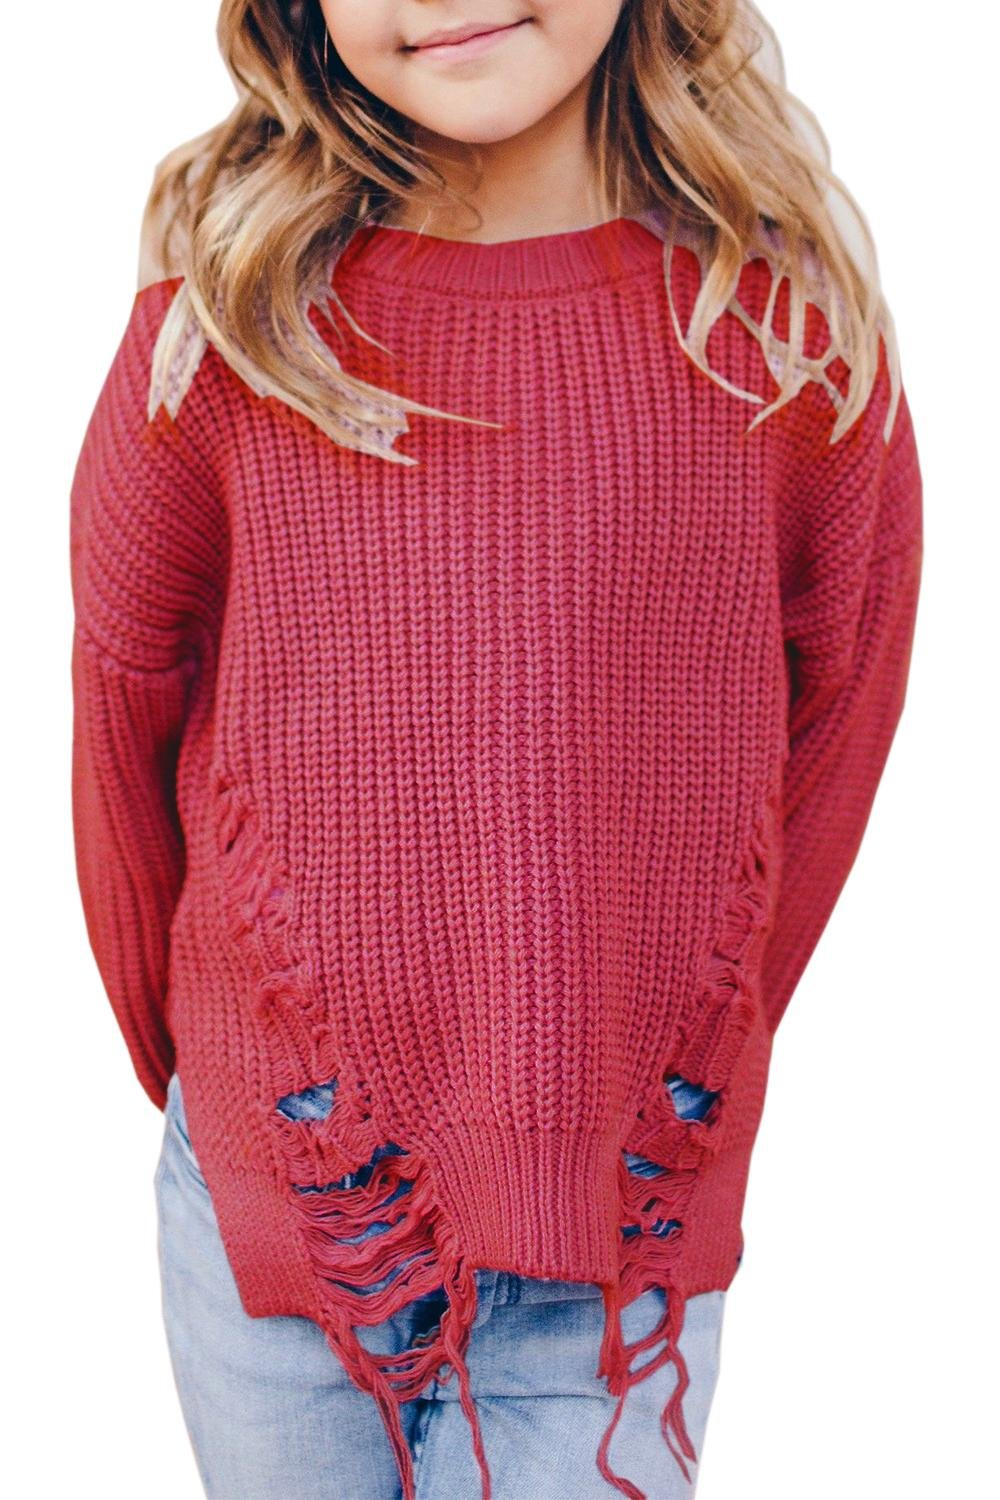 KunLunMen Girls Ripped Long Sleeve Sweaters Knitted Loose Crew Neck Pullover